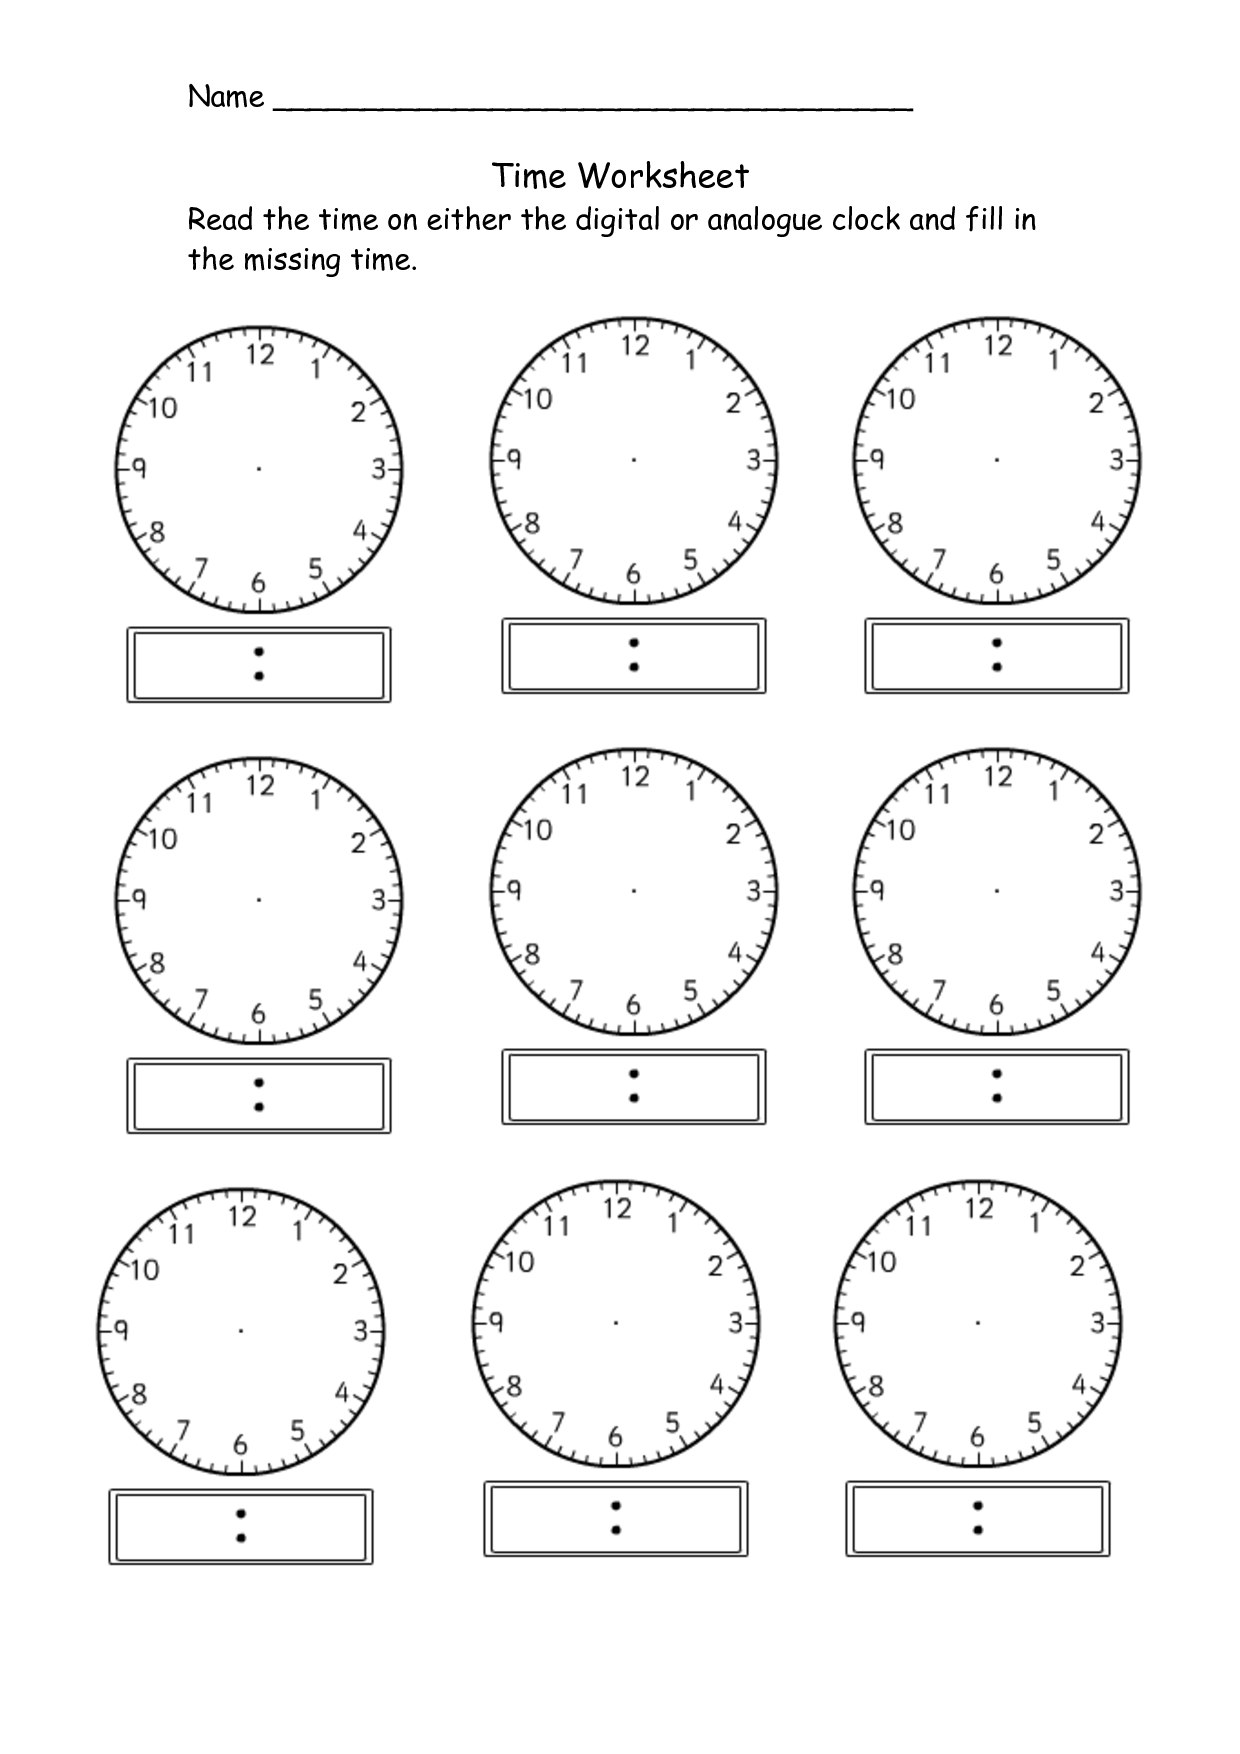 Worksheets Telling Time Worksheets Kindergarten blank clock worksheet telling time kiddo shelter education shelter